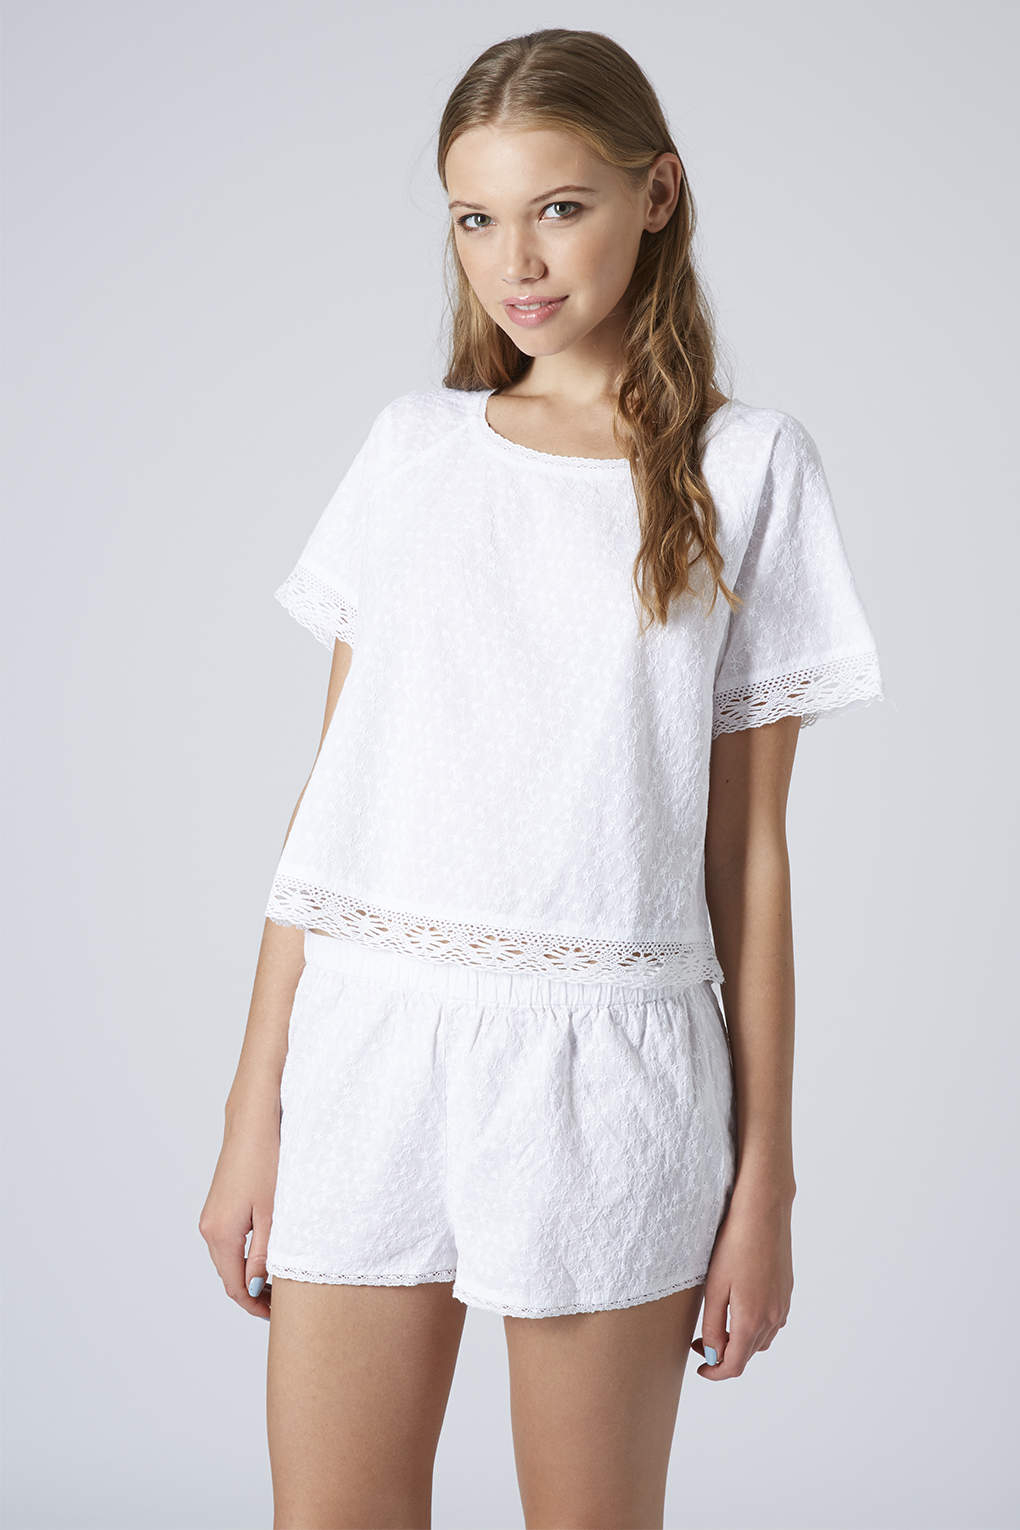 TOPSHOP Pug Tee and Short Pyjama Set in White - Lyst